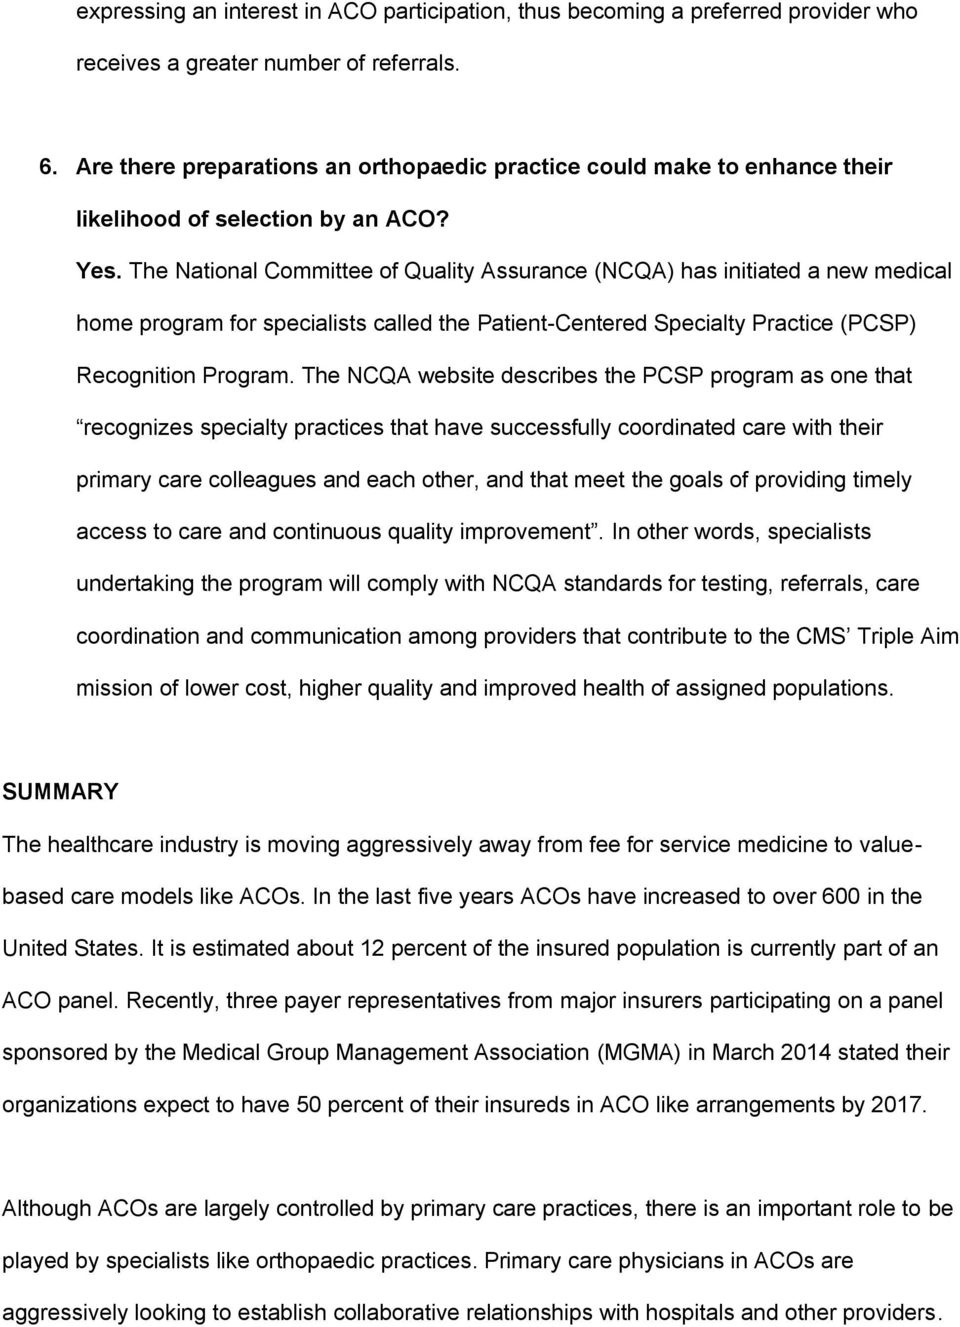 The National Committee of Quality Assurance (NCQA) has initiated a new medical home program for specialists called the Patient-Centered Specialty Practice (PCSP) Recognition Program.